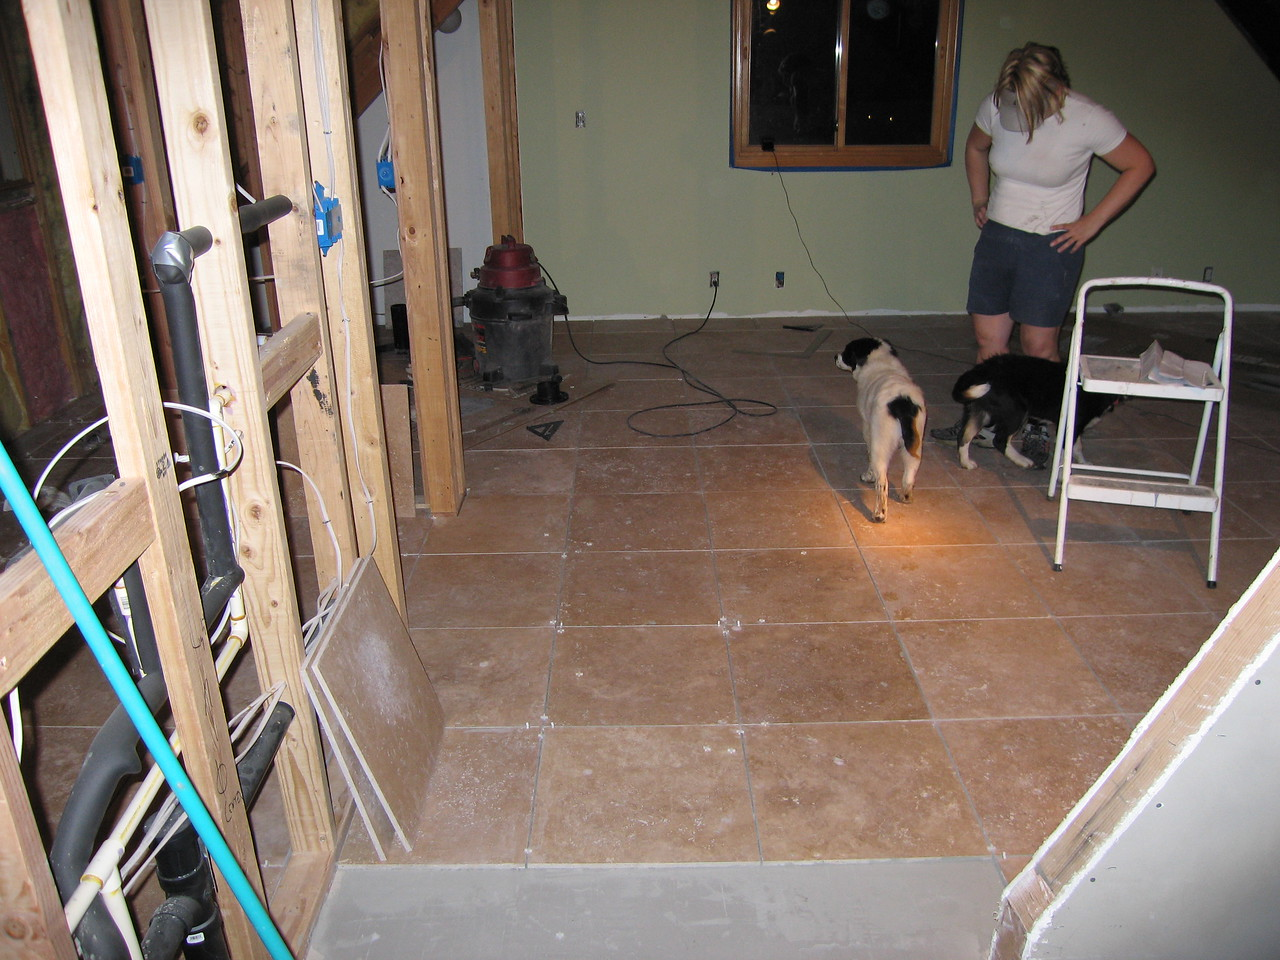 April 16 -17, 2005 - Kelly and I installed tile over the trouble area and into the bathroom